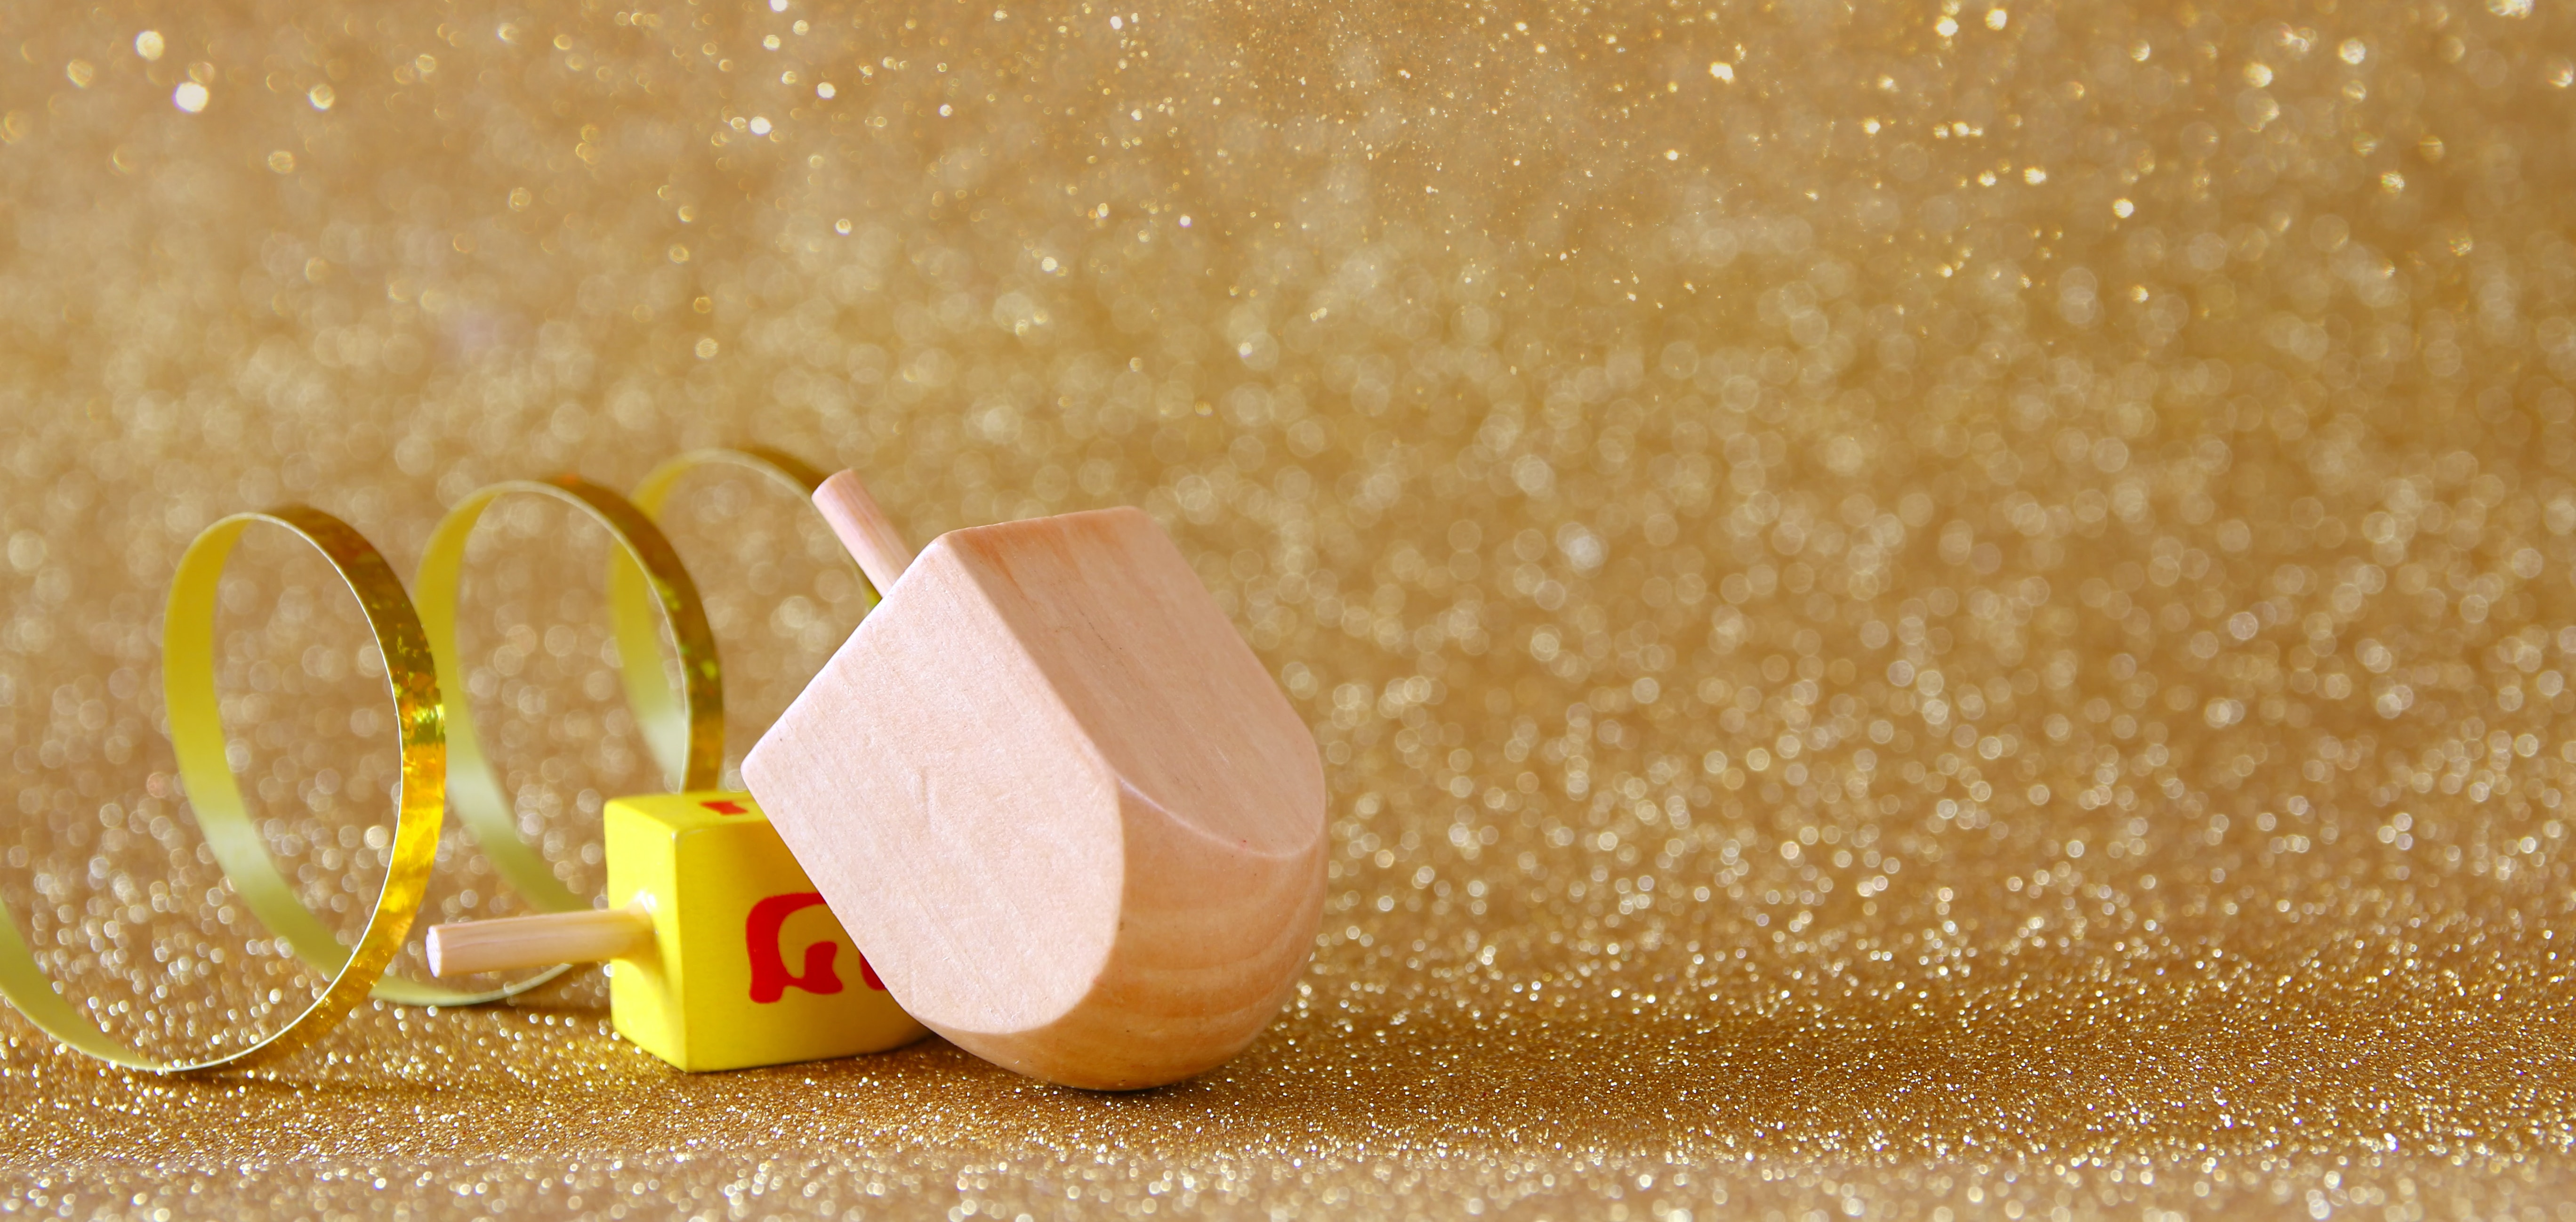 photograph relating to How to Play the Dreidel Game Printable referred to as How toward enjoy dreidel: Recommendations, letter meanings, Hanukkah